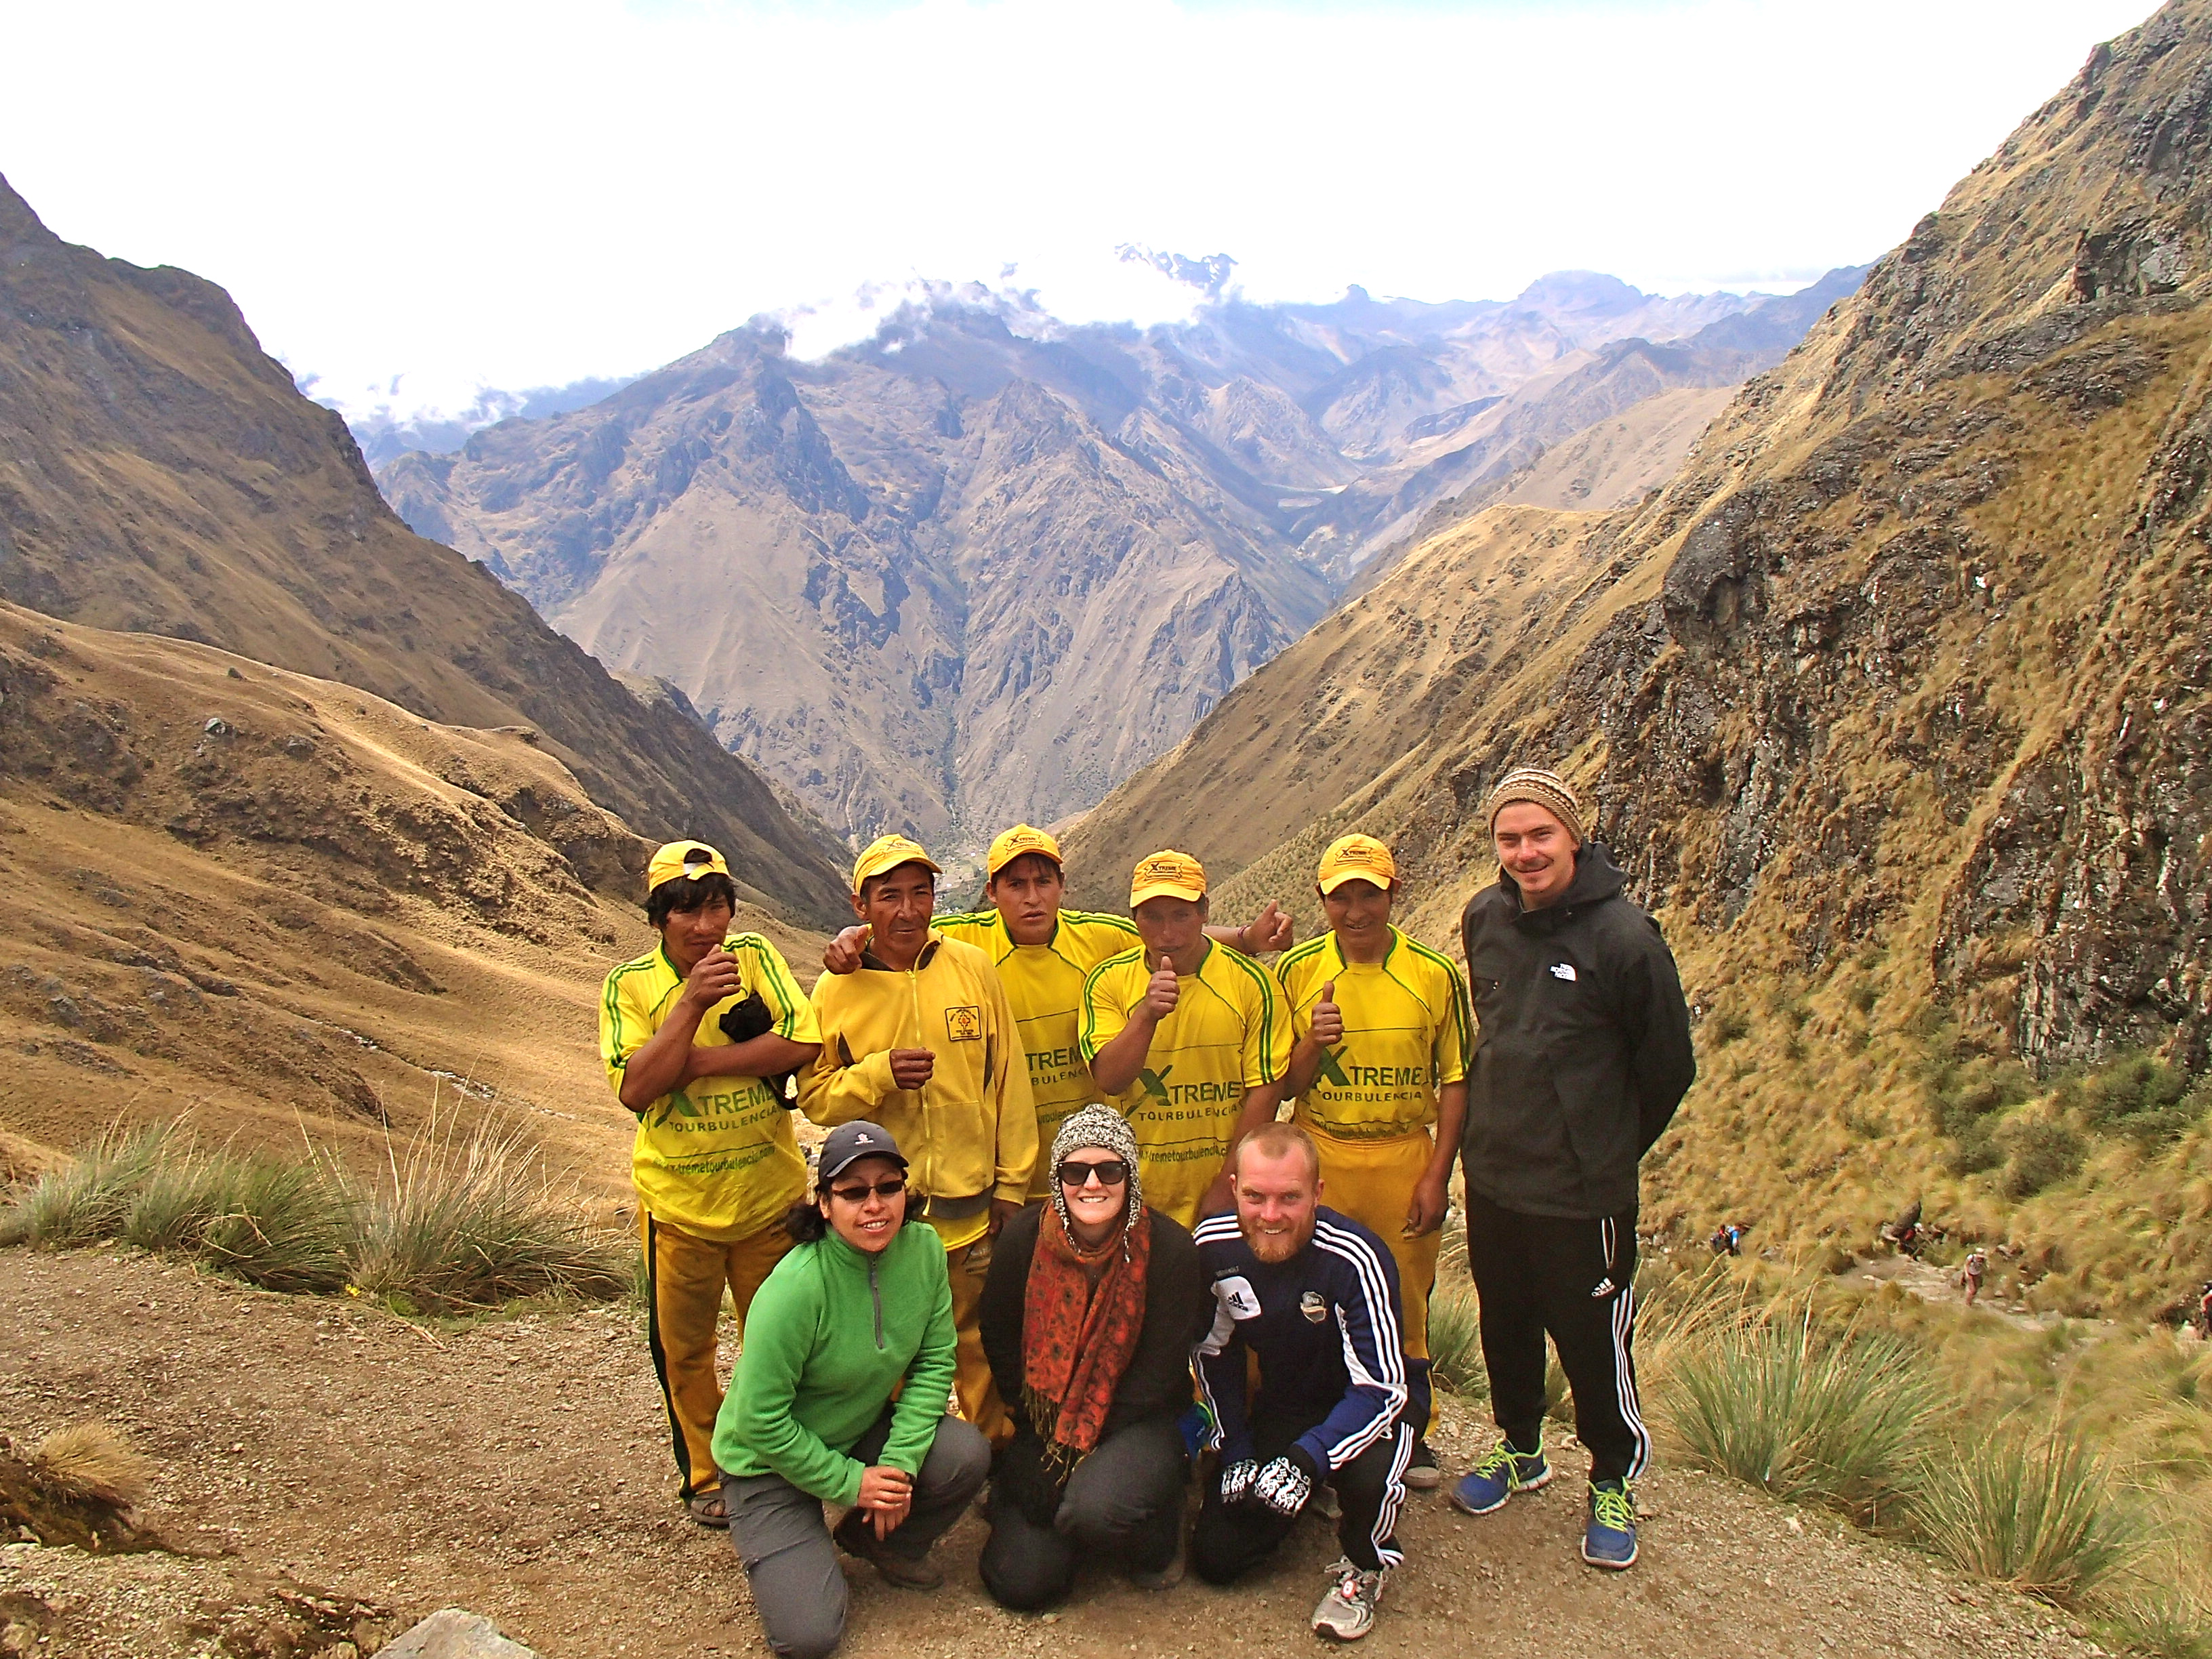 what is there to see along the inca trail?